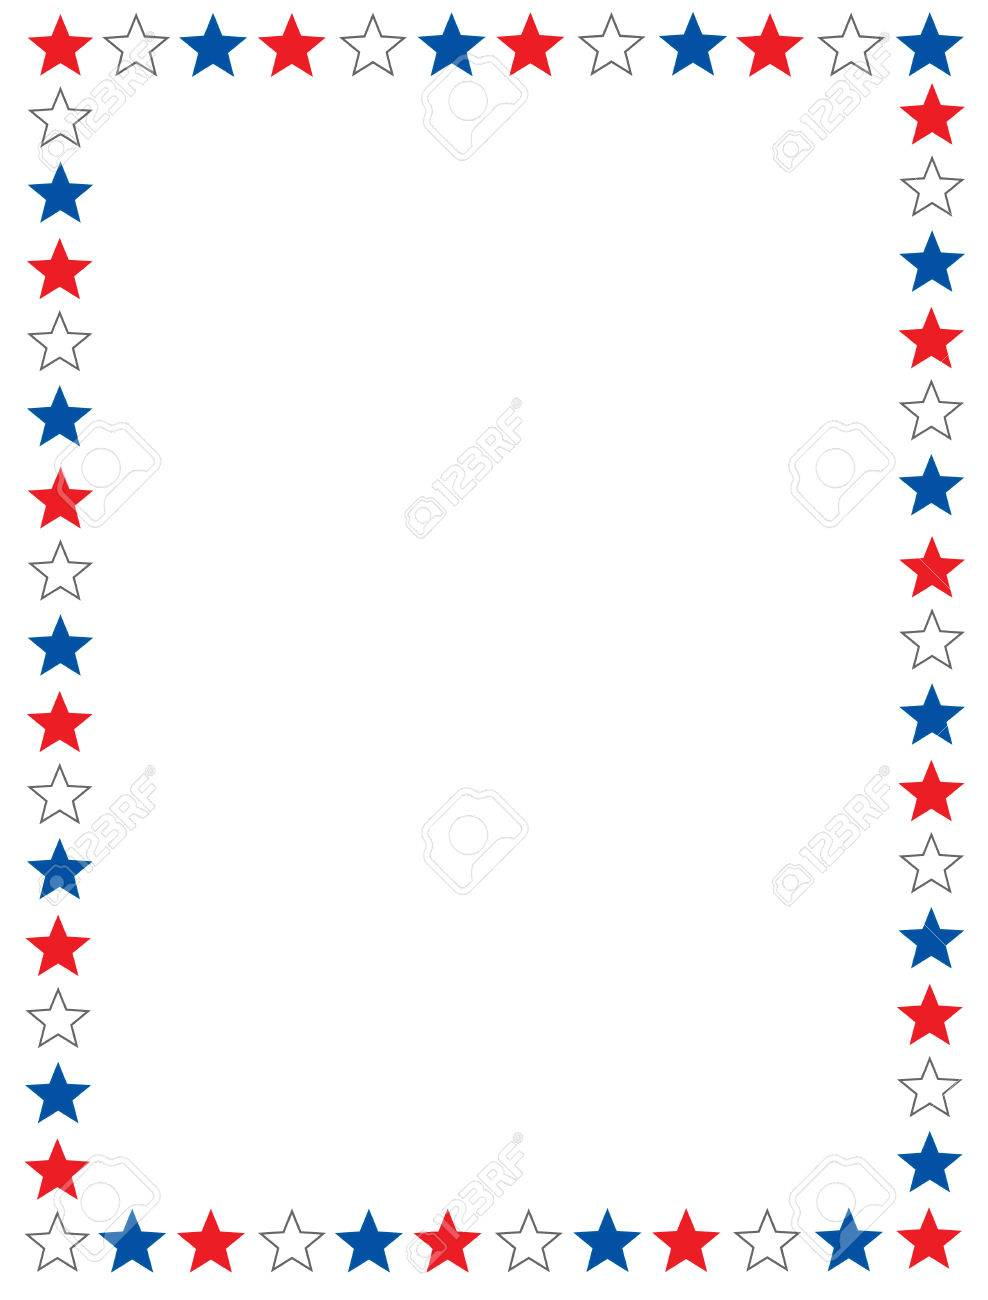 Red blue and white stars 4th of july border / frame.